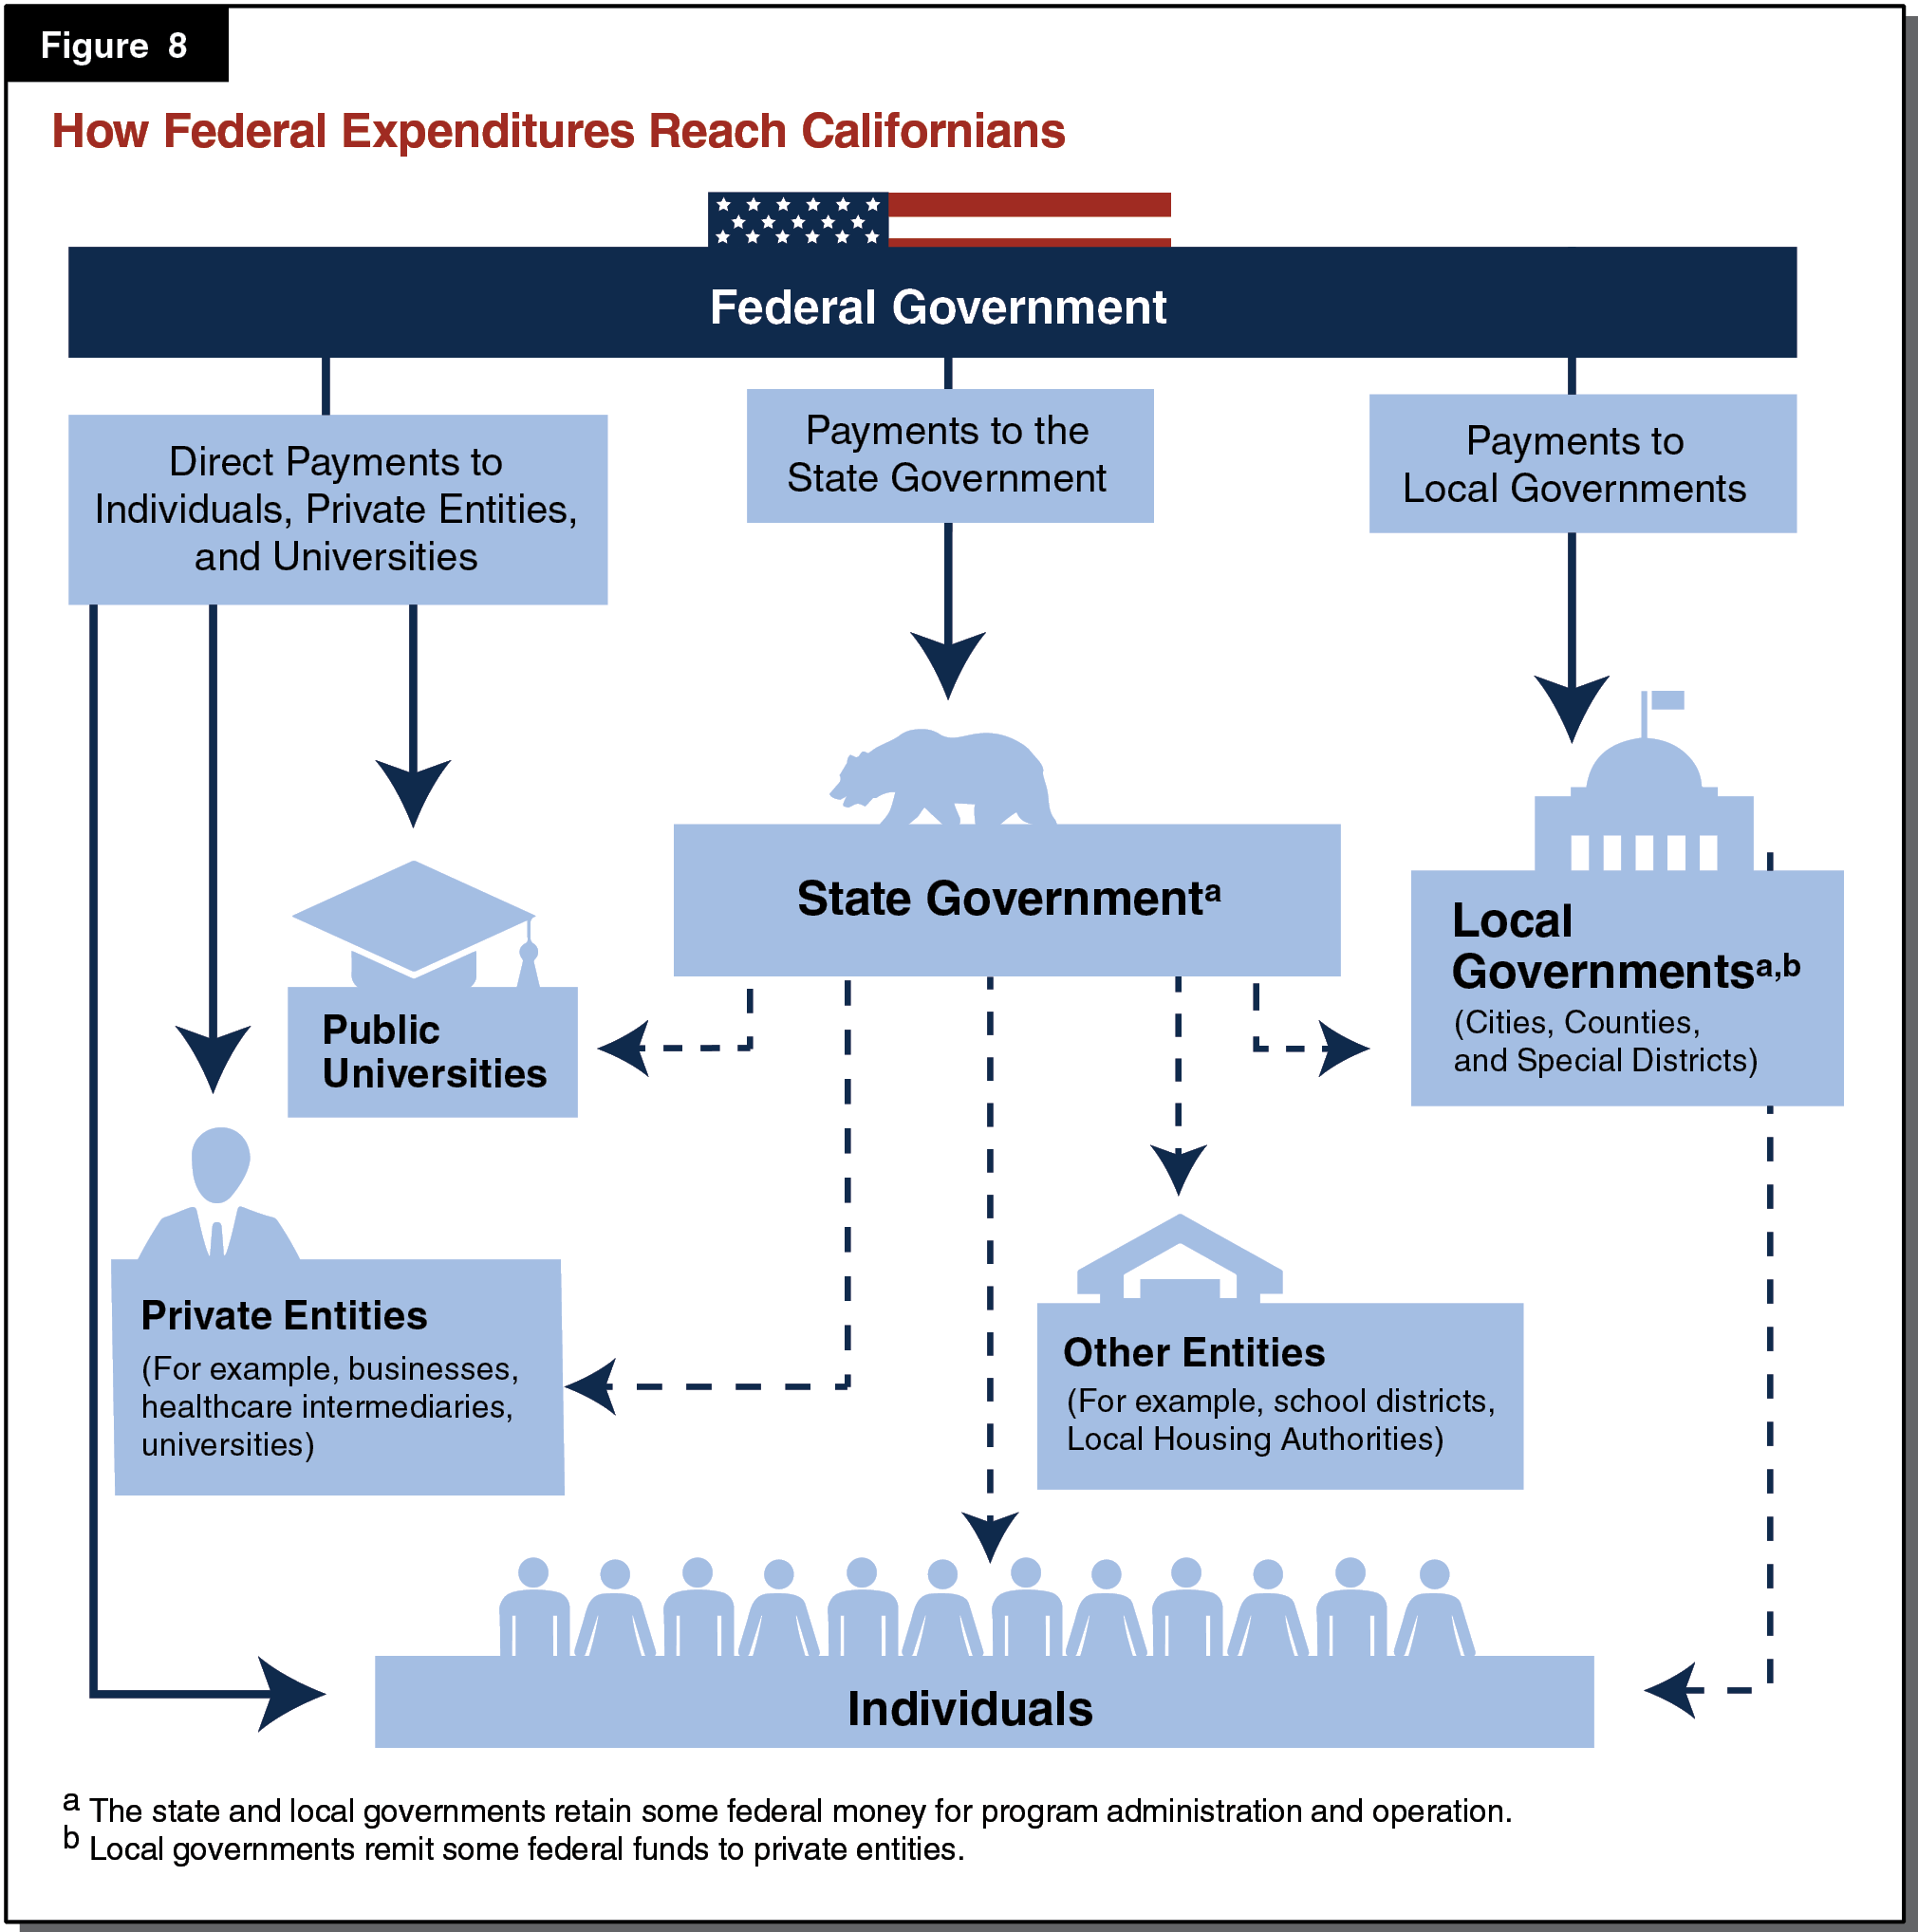 Figure 8 - How Federal Expenditures Reach Californians